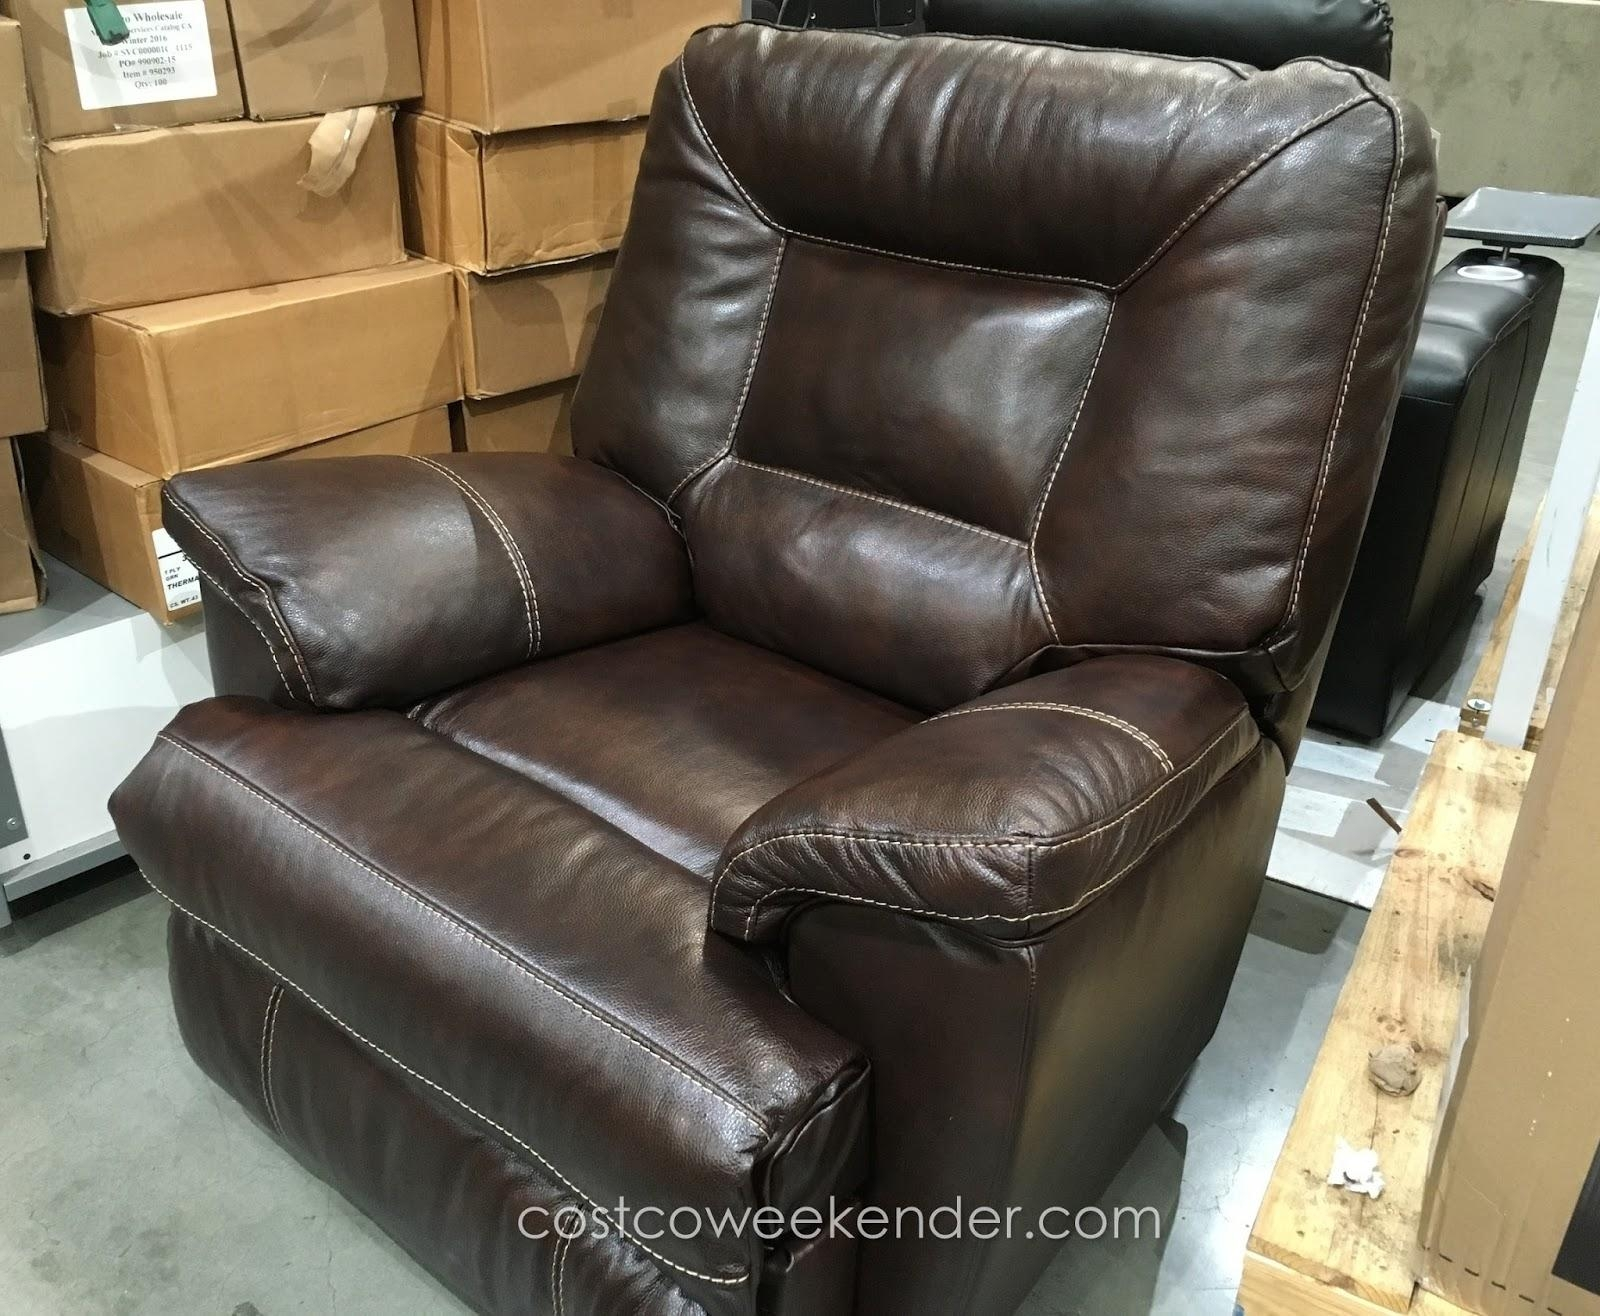 Furniture & Sofa: Enjoy Your Holiday With Costco Home Theater Throughout Berkline Sofa (Image 11 of 20)